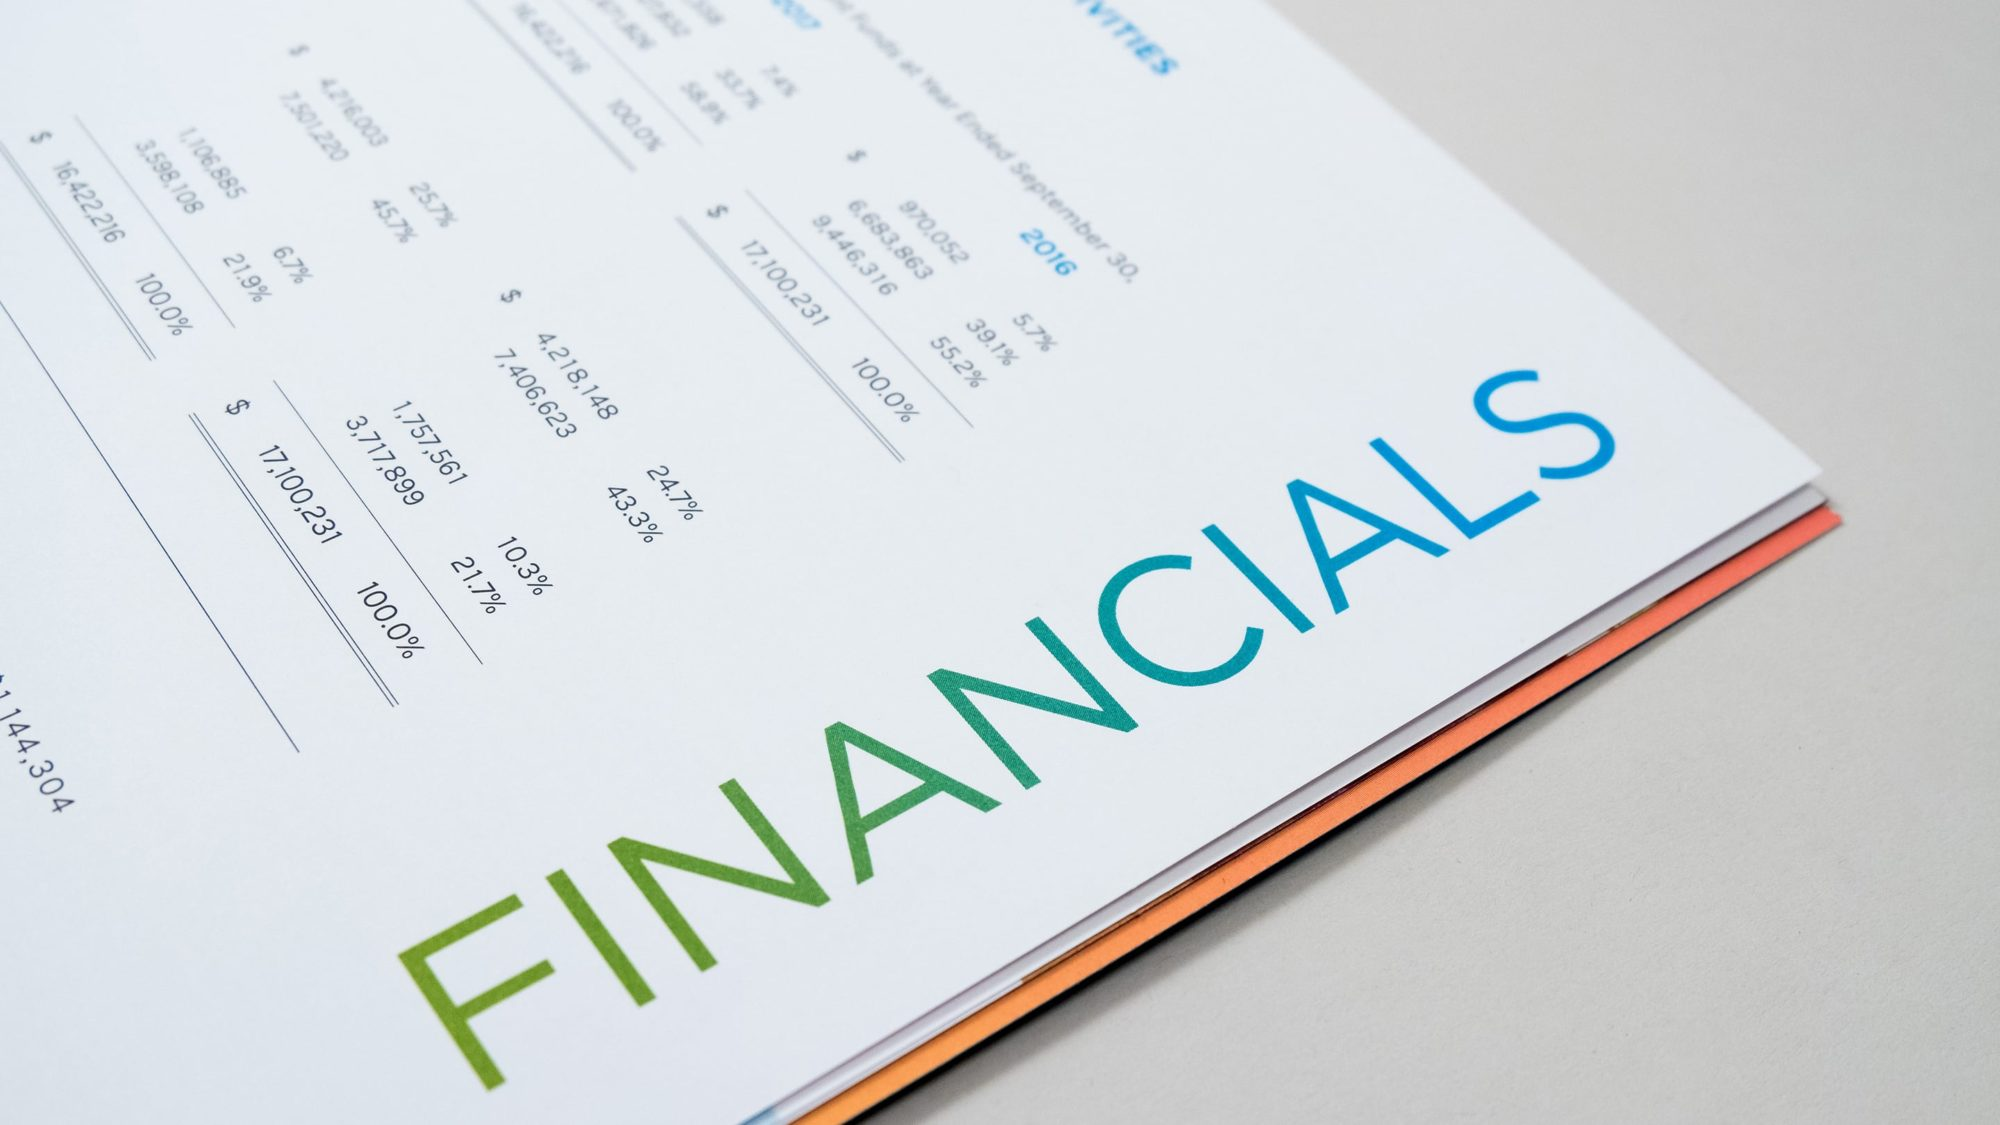 Type design on Financials headline using the same green to blue gradient that is on the report's cover